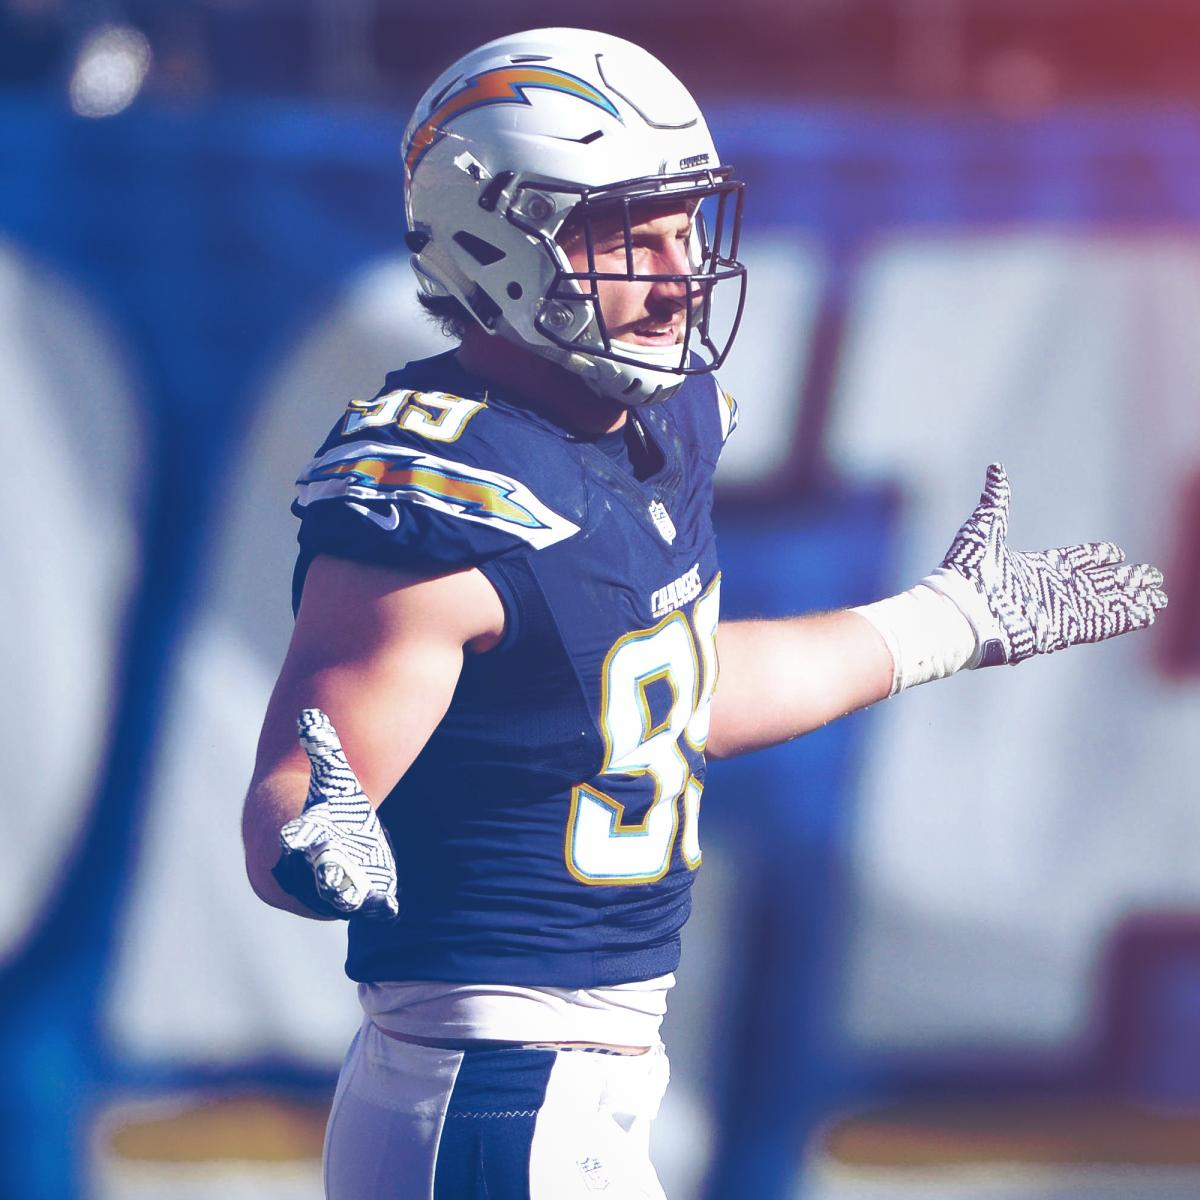 From GoT To GOAT: Joey Bosa's Impending Stardom Has No